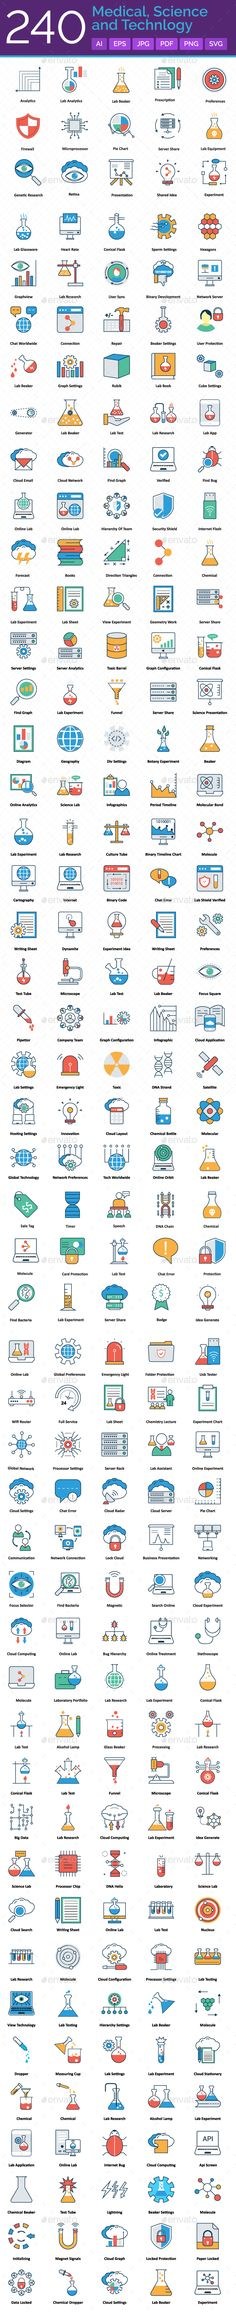 405 Best Icons images in 2019   Icon set, Icons, Design web